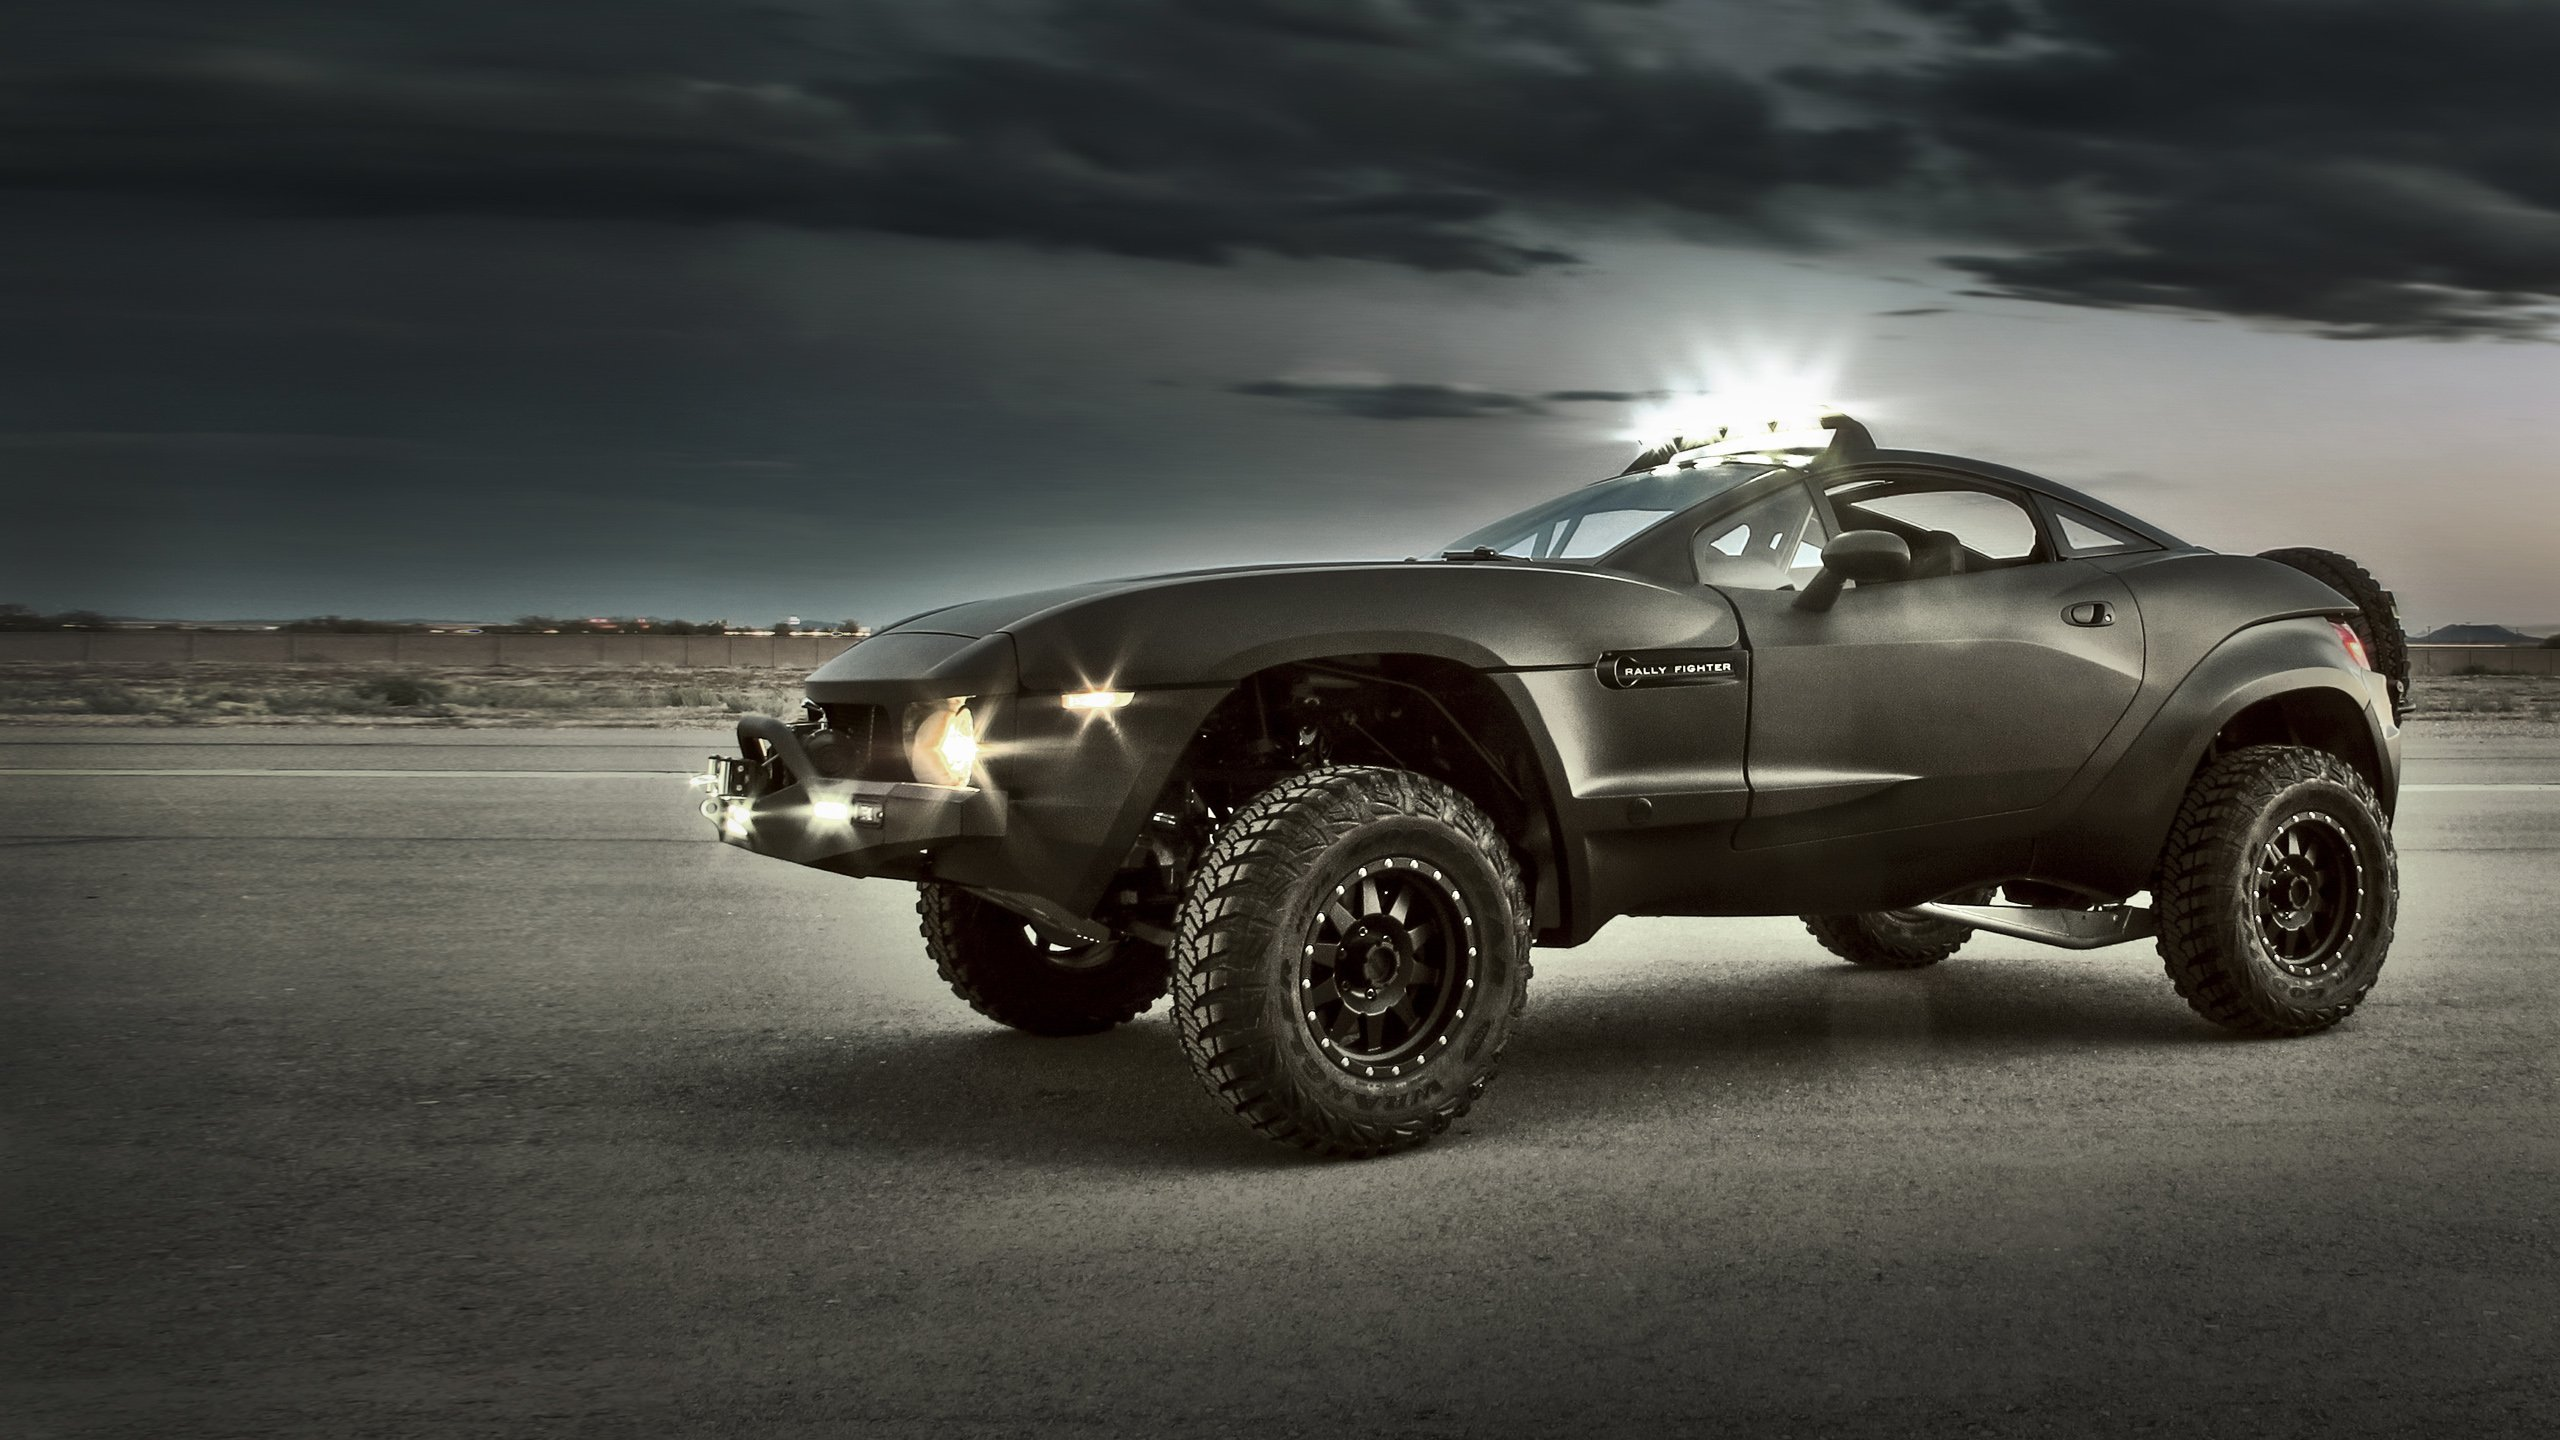 Local Motors Rally Fighter 2010 Cars Wallpaper 2560x1440